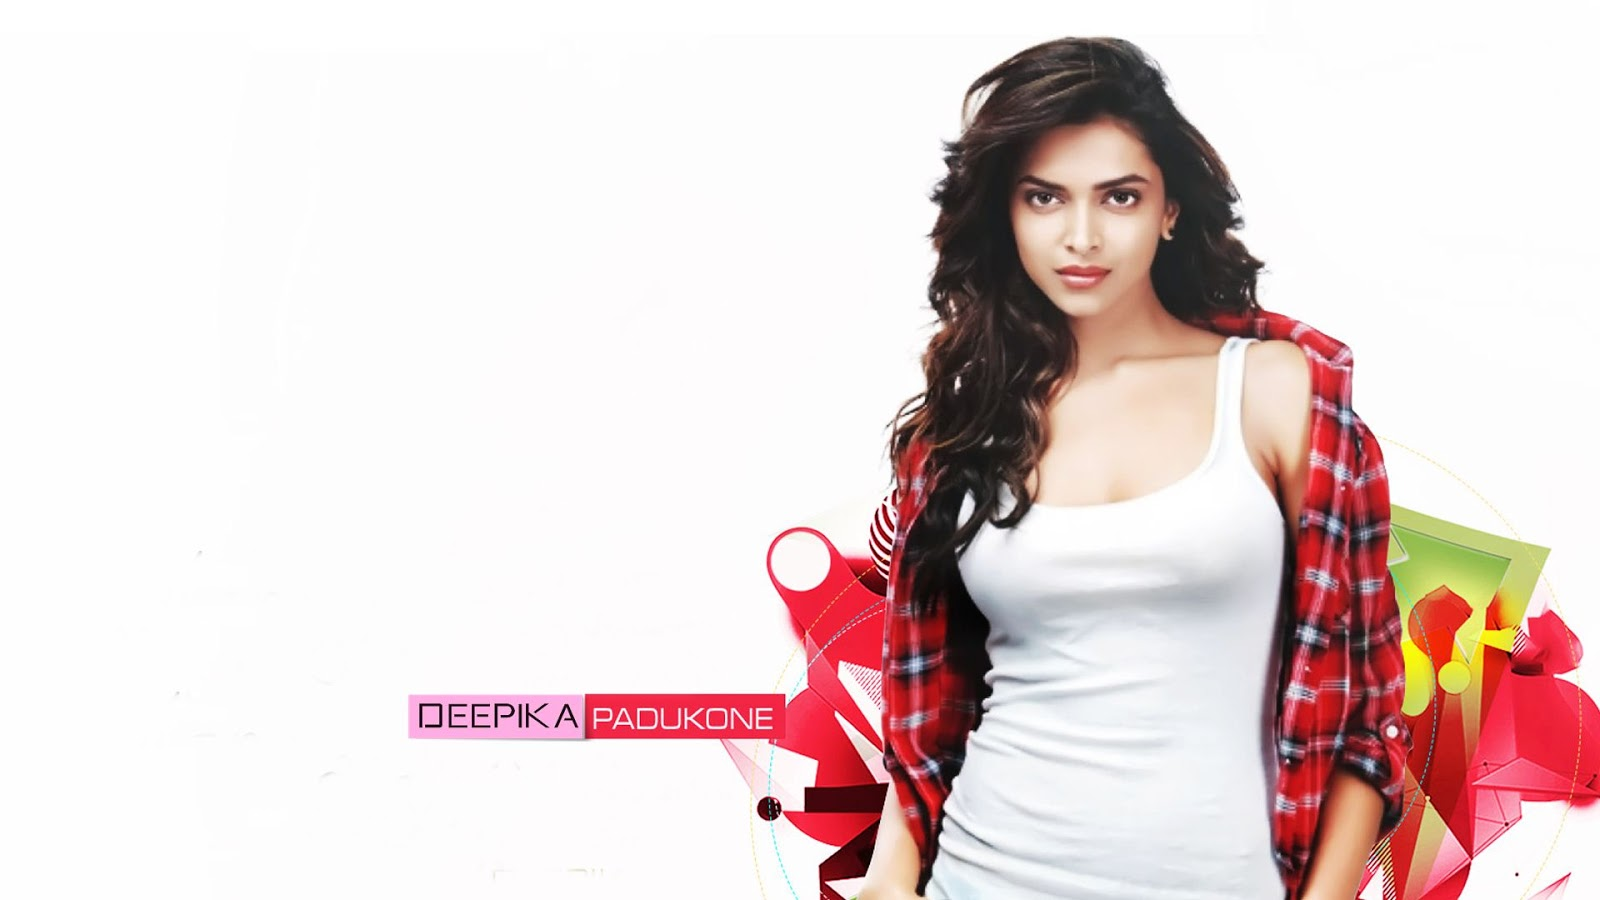 Deepika Padukone Wallapapers Collection: Best 6 Wallpapers Of Sweet Cute Desi Deepika Padukone Dp